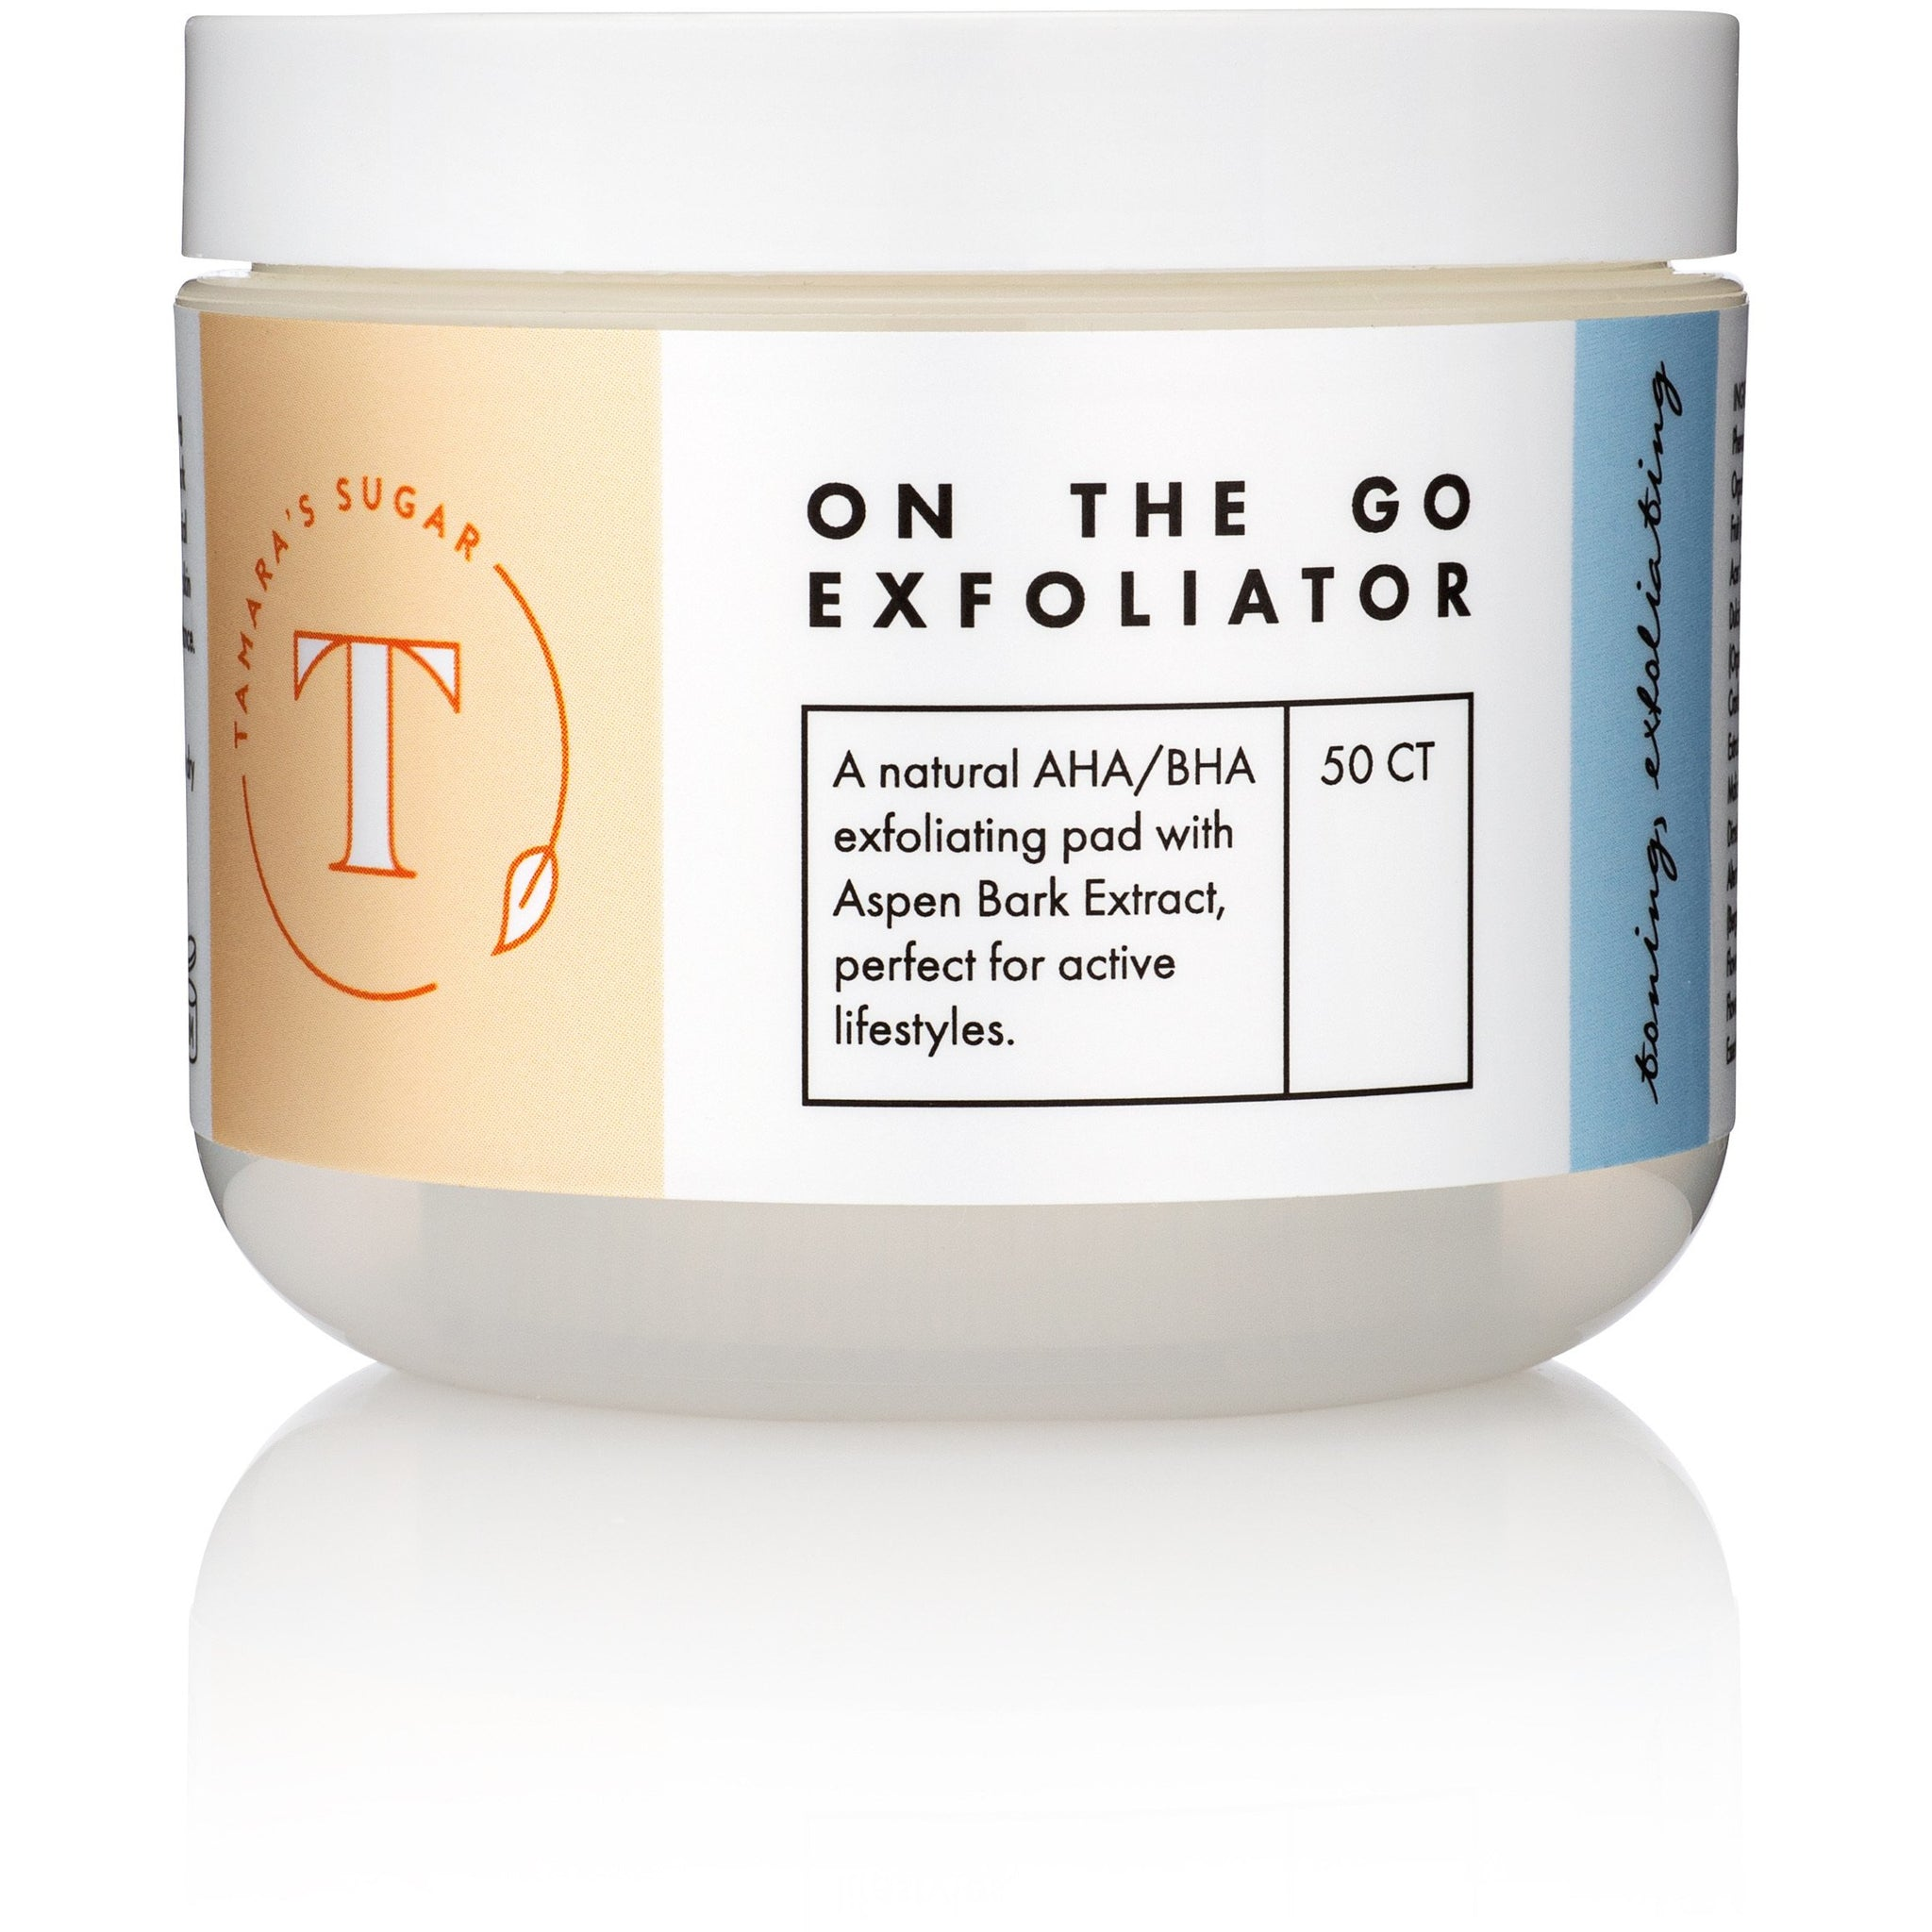 CURRENTLY RESTOCKING: On the Go Exfoliator